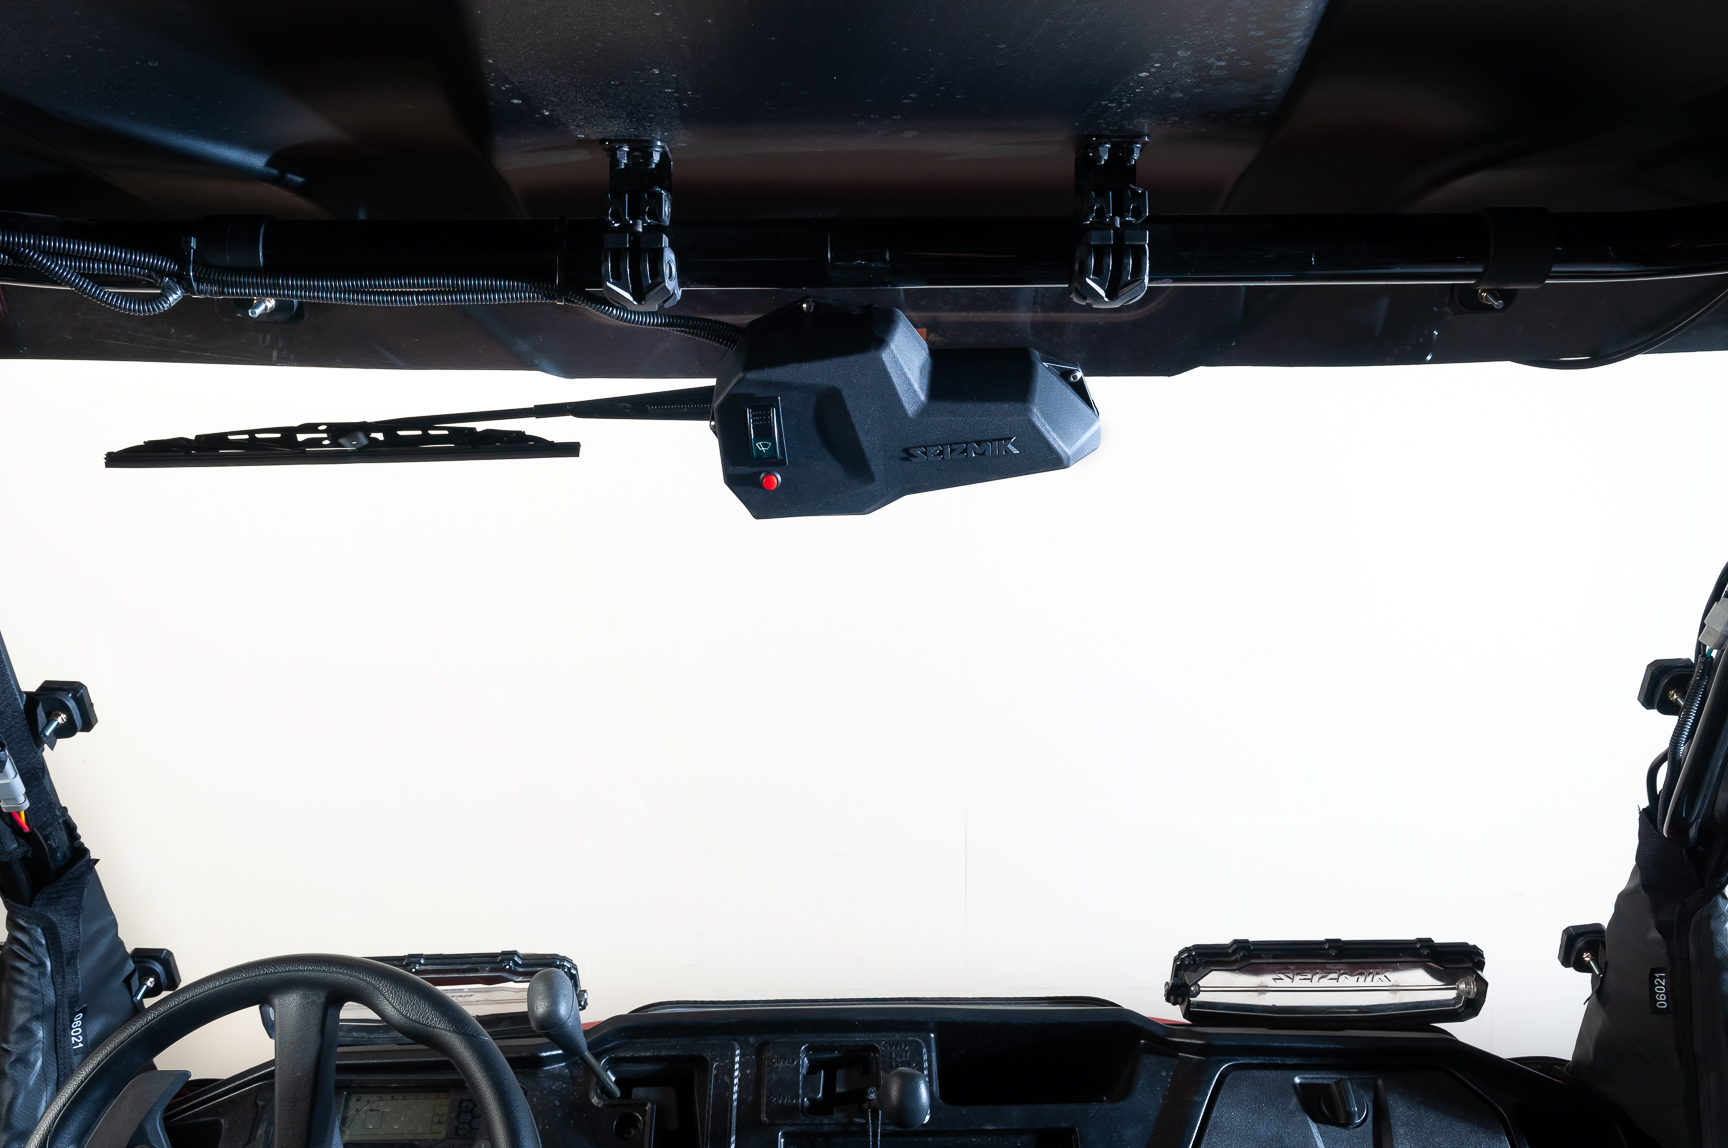 KEMIMOTO UTV Manual Hand Operated Windshield Wiper Assembly Compatible with Polaris Ranger RZR 900 1000 General Can am Maverick X3 Commander Defender Pro